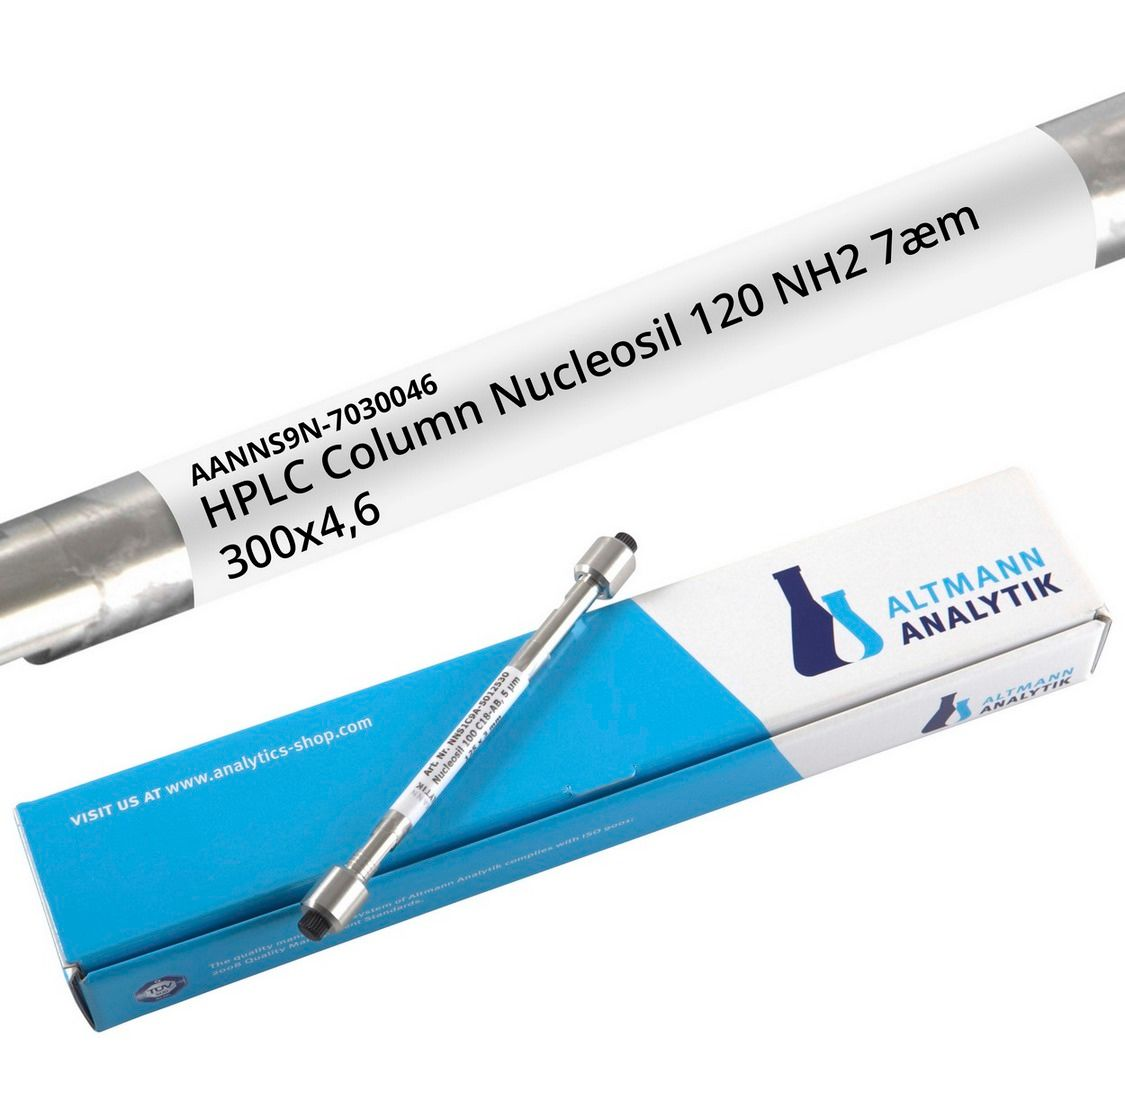 HPLC Column Nucleosil 120 NH2 7µm 300x4,6 mm, 120A